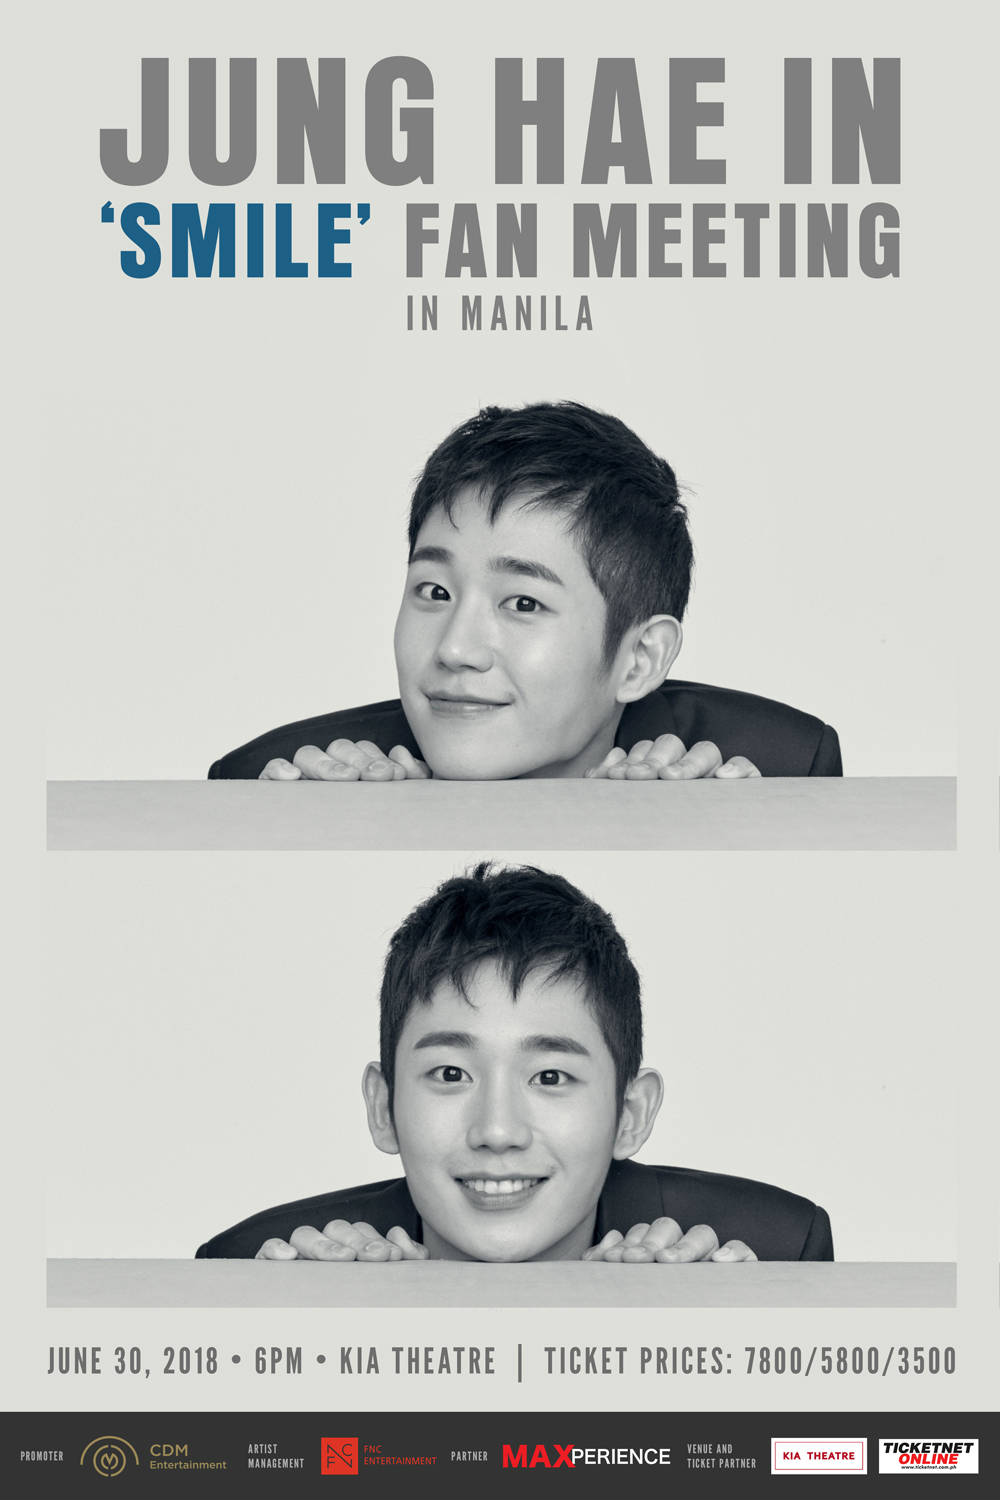 Korean actor Jung Hae-in is coming to Manila!